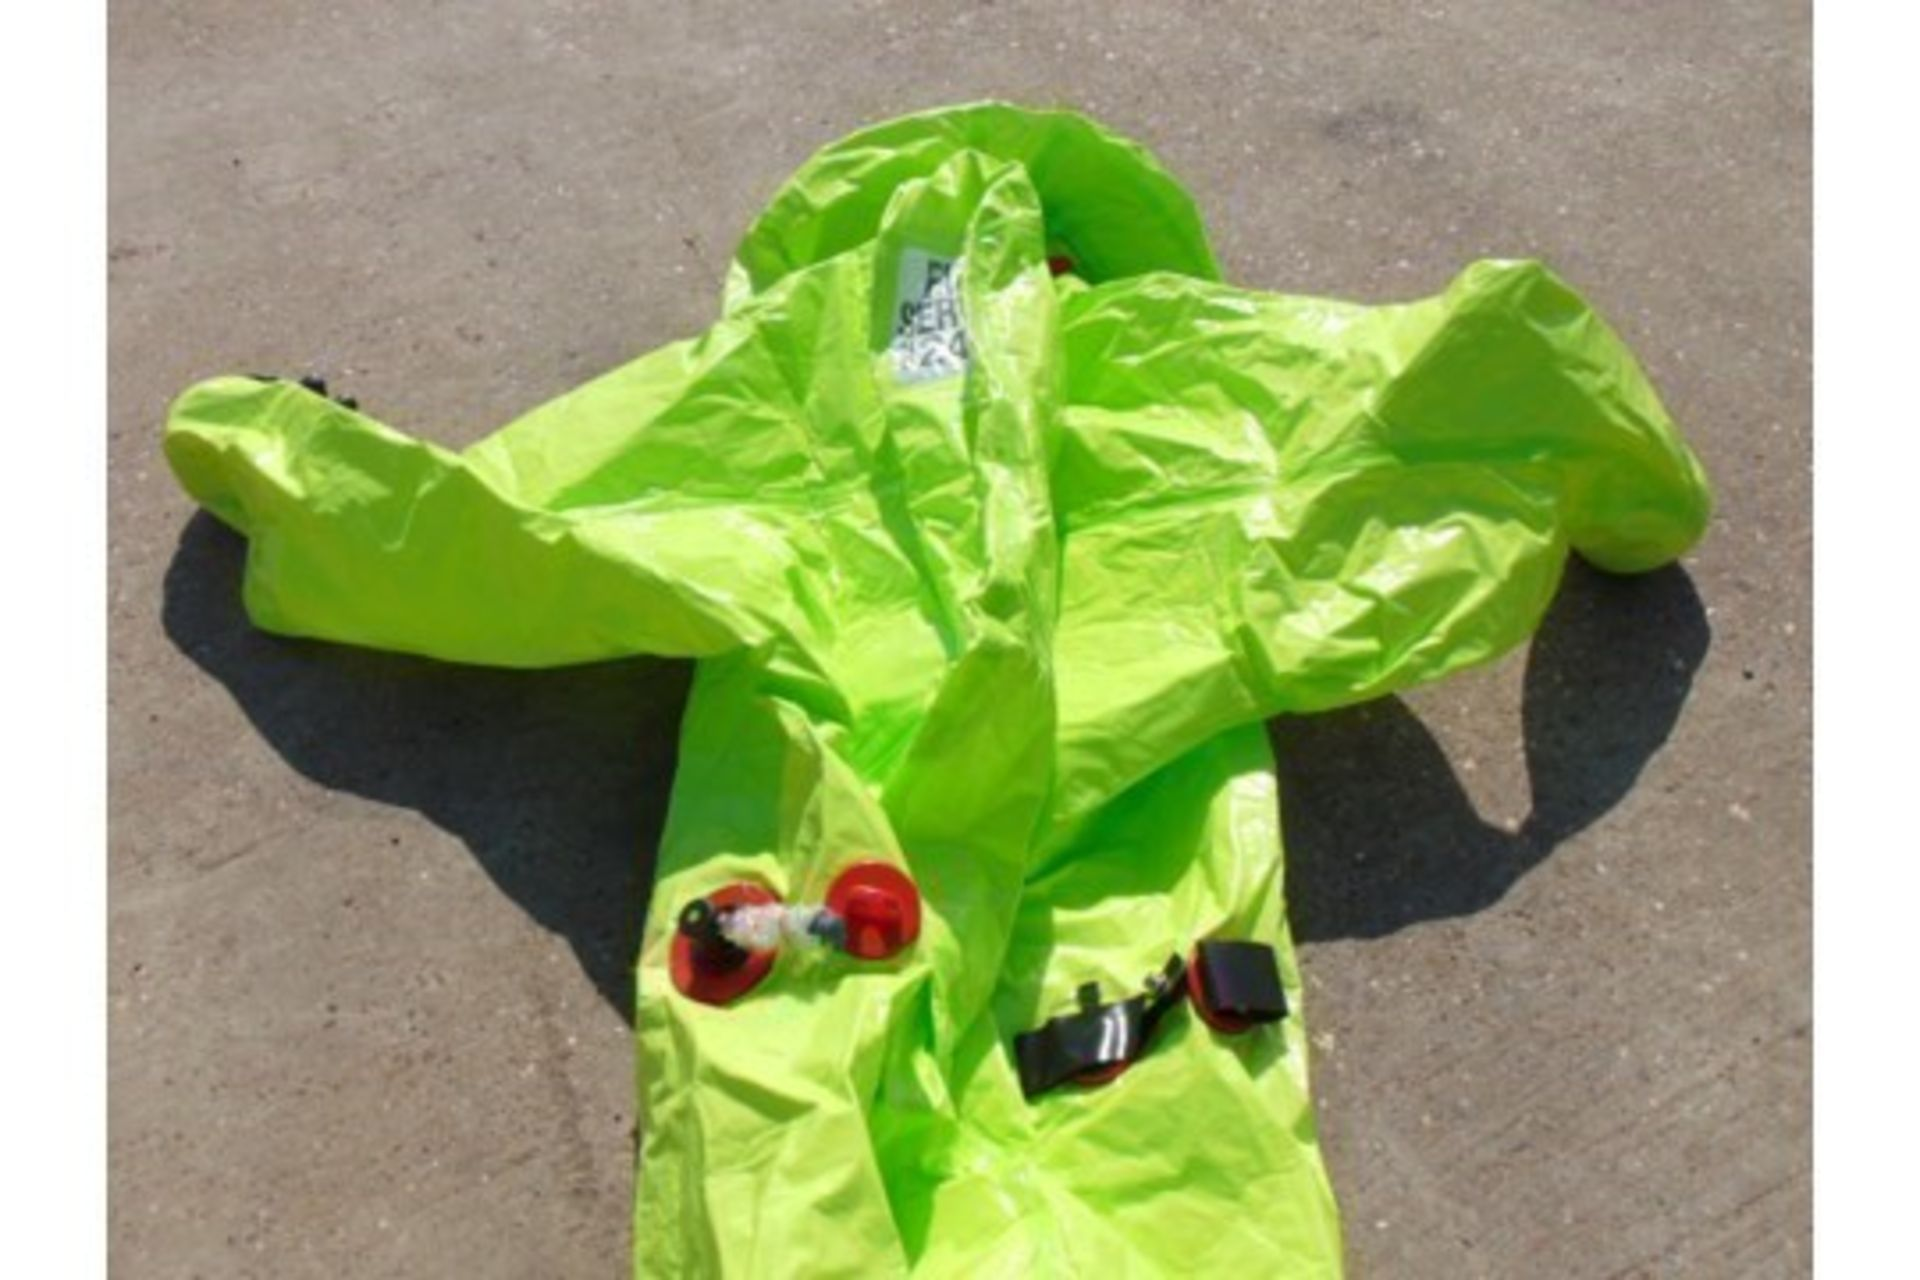 10 x Respirex Tychem TK Gas-Tight Hazmat Suit Type 1A with Attached Boots and Gloves - Image 5 of 10